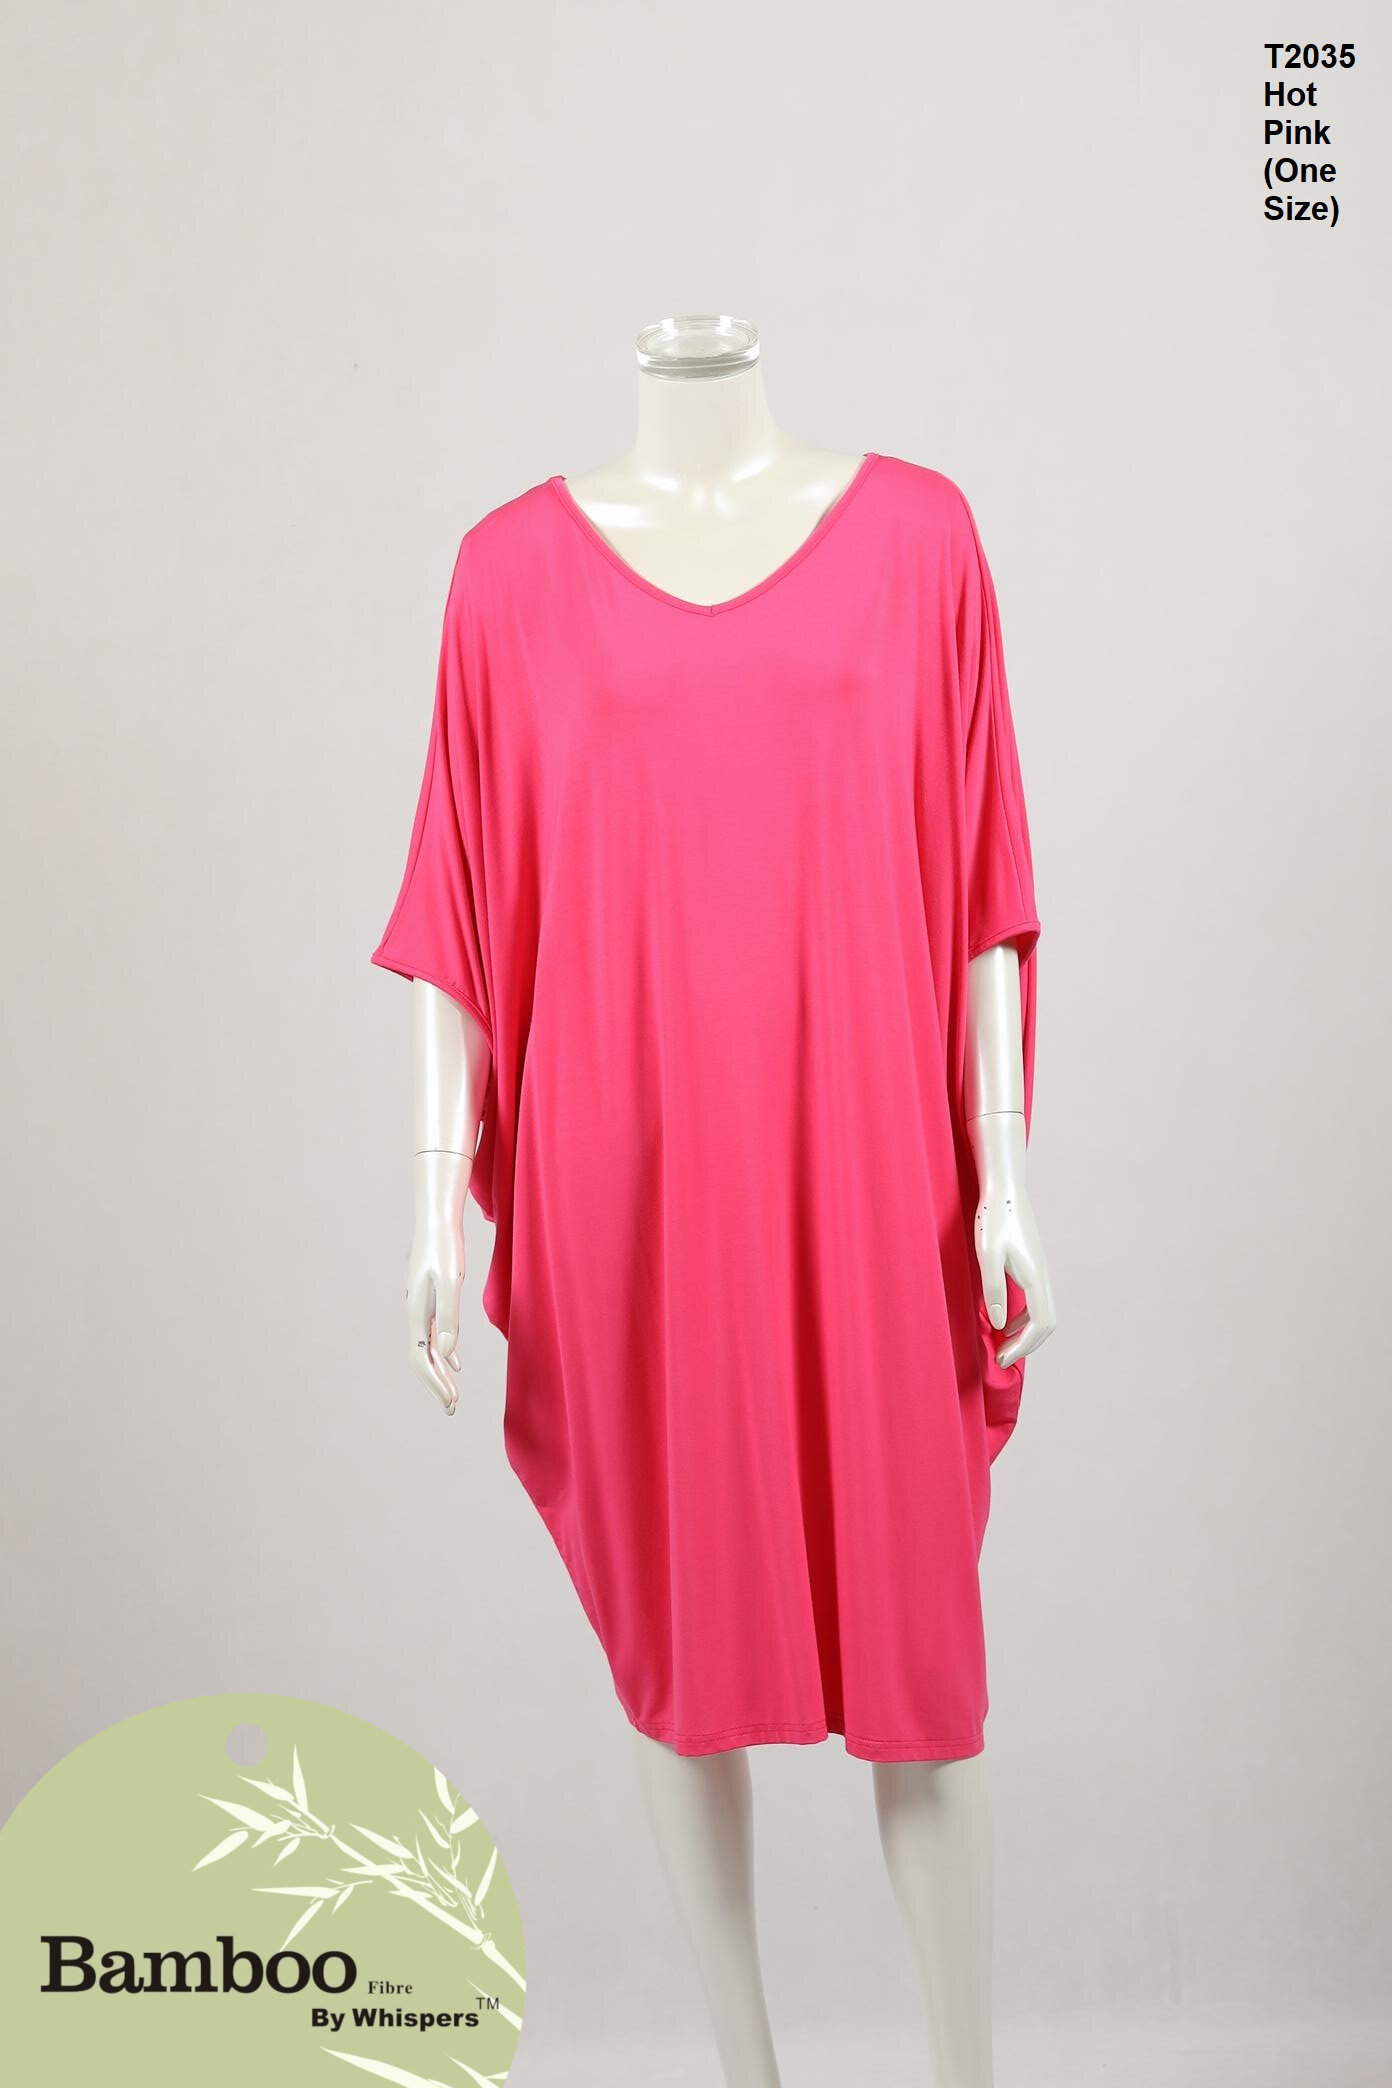 T2035-One Size-Hot Pink.JPG